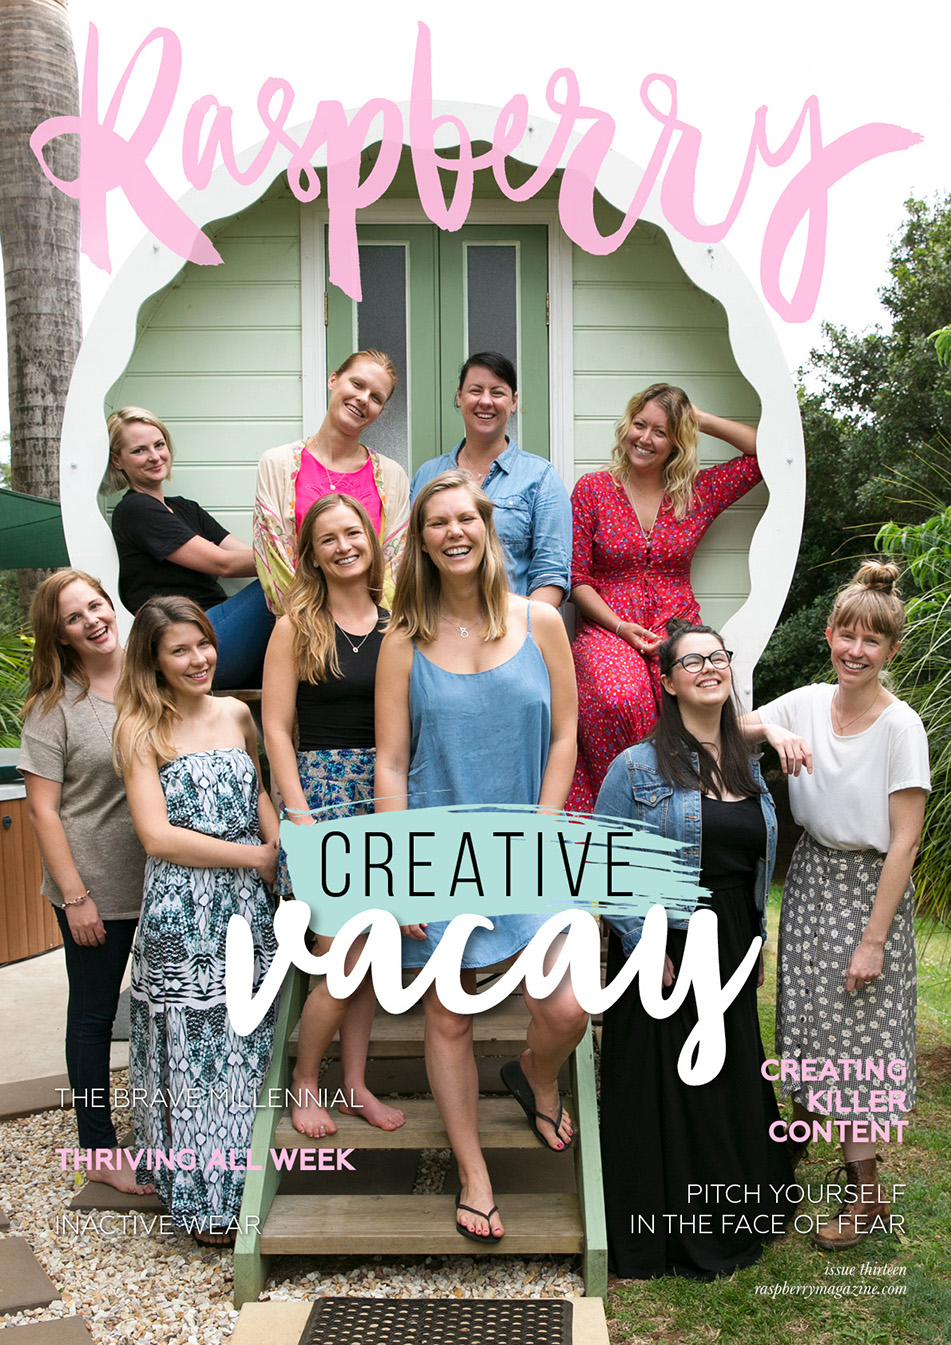 ISSUE THIRTEEN  ( read online here )   COVER STORY // Creative Vacay: musings on a weekend-long creative retreat by Kirra Smith   Raspberry interviews  Laura Youngkin of The Brave Millennial   Work/life balance struggles? Try shifting focus instead  by Claire Mansell   Raspberry interviews  Lauren Jane of Inactive Wear   Raspberry interviews  Melanie Pace, fashion advisor and stylist   How to be your own guru  by Elinor Cohen   Pitch yourself in the face of fear  by Kerri Walker   Too busy to create killer content? Here's how to make it happen  by Jo Gifford   Raspberry interviews  Gail Yui   From terrorism analyst to stationery designer  by Amelia White   Five steps to thrive all week  by Stephanie German   Entrepreneurship: a spiritual journey  by Jeannette Encinias